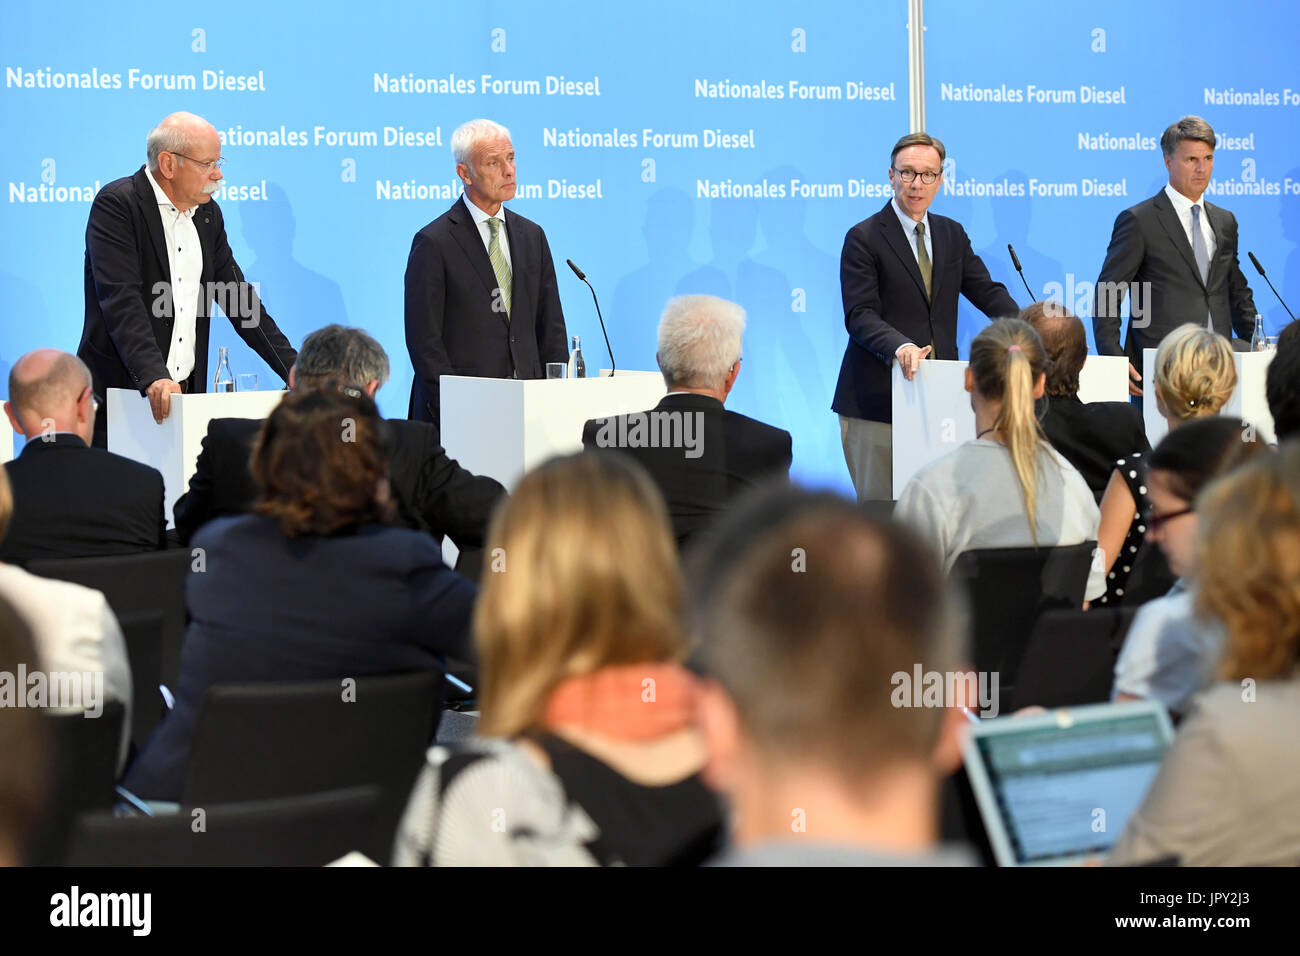 Berlin, Germany. 2nd Aug, 2017. Chairman of the board of Volkswagen Dieter Zetsche (L-R), chairman of the board of Volkswagen AG Matthias Wissmann, president of the German Automobile Industry Association (VdA) Matthias Wissmann, and chairman of the baord of BMW boss Harald Krueger speak during a press conference after the diesel summit in Berlin, Germany, on 2 August, 2017. The aim of the summit was to avoid a ban on diesel vehicles in towns. Credit: dpa picture alliance/Alamy Live News - Stock Image